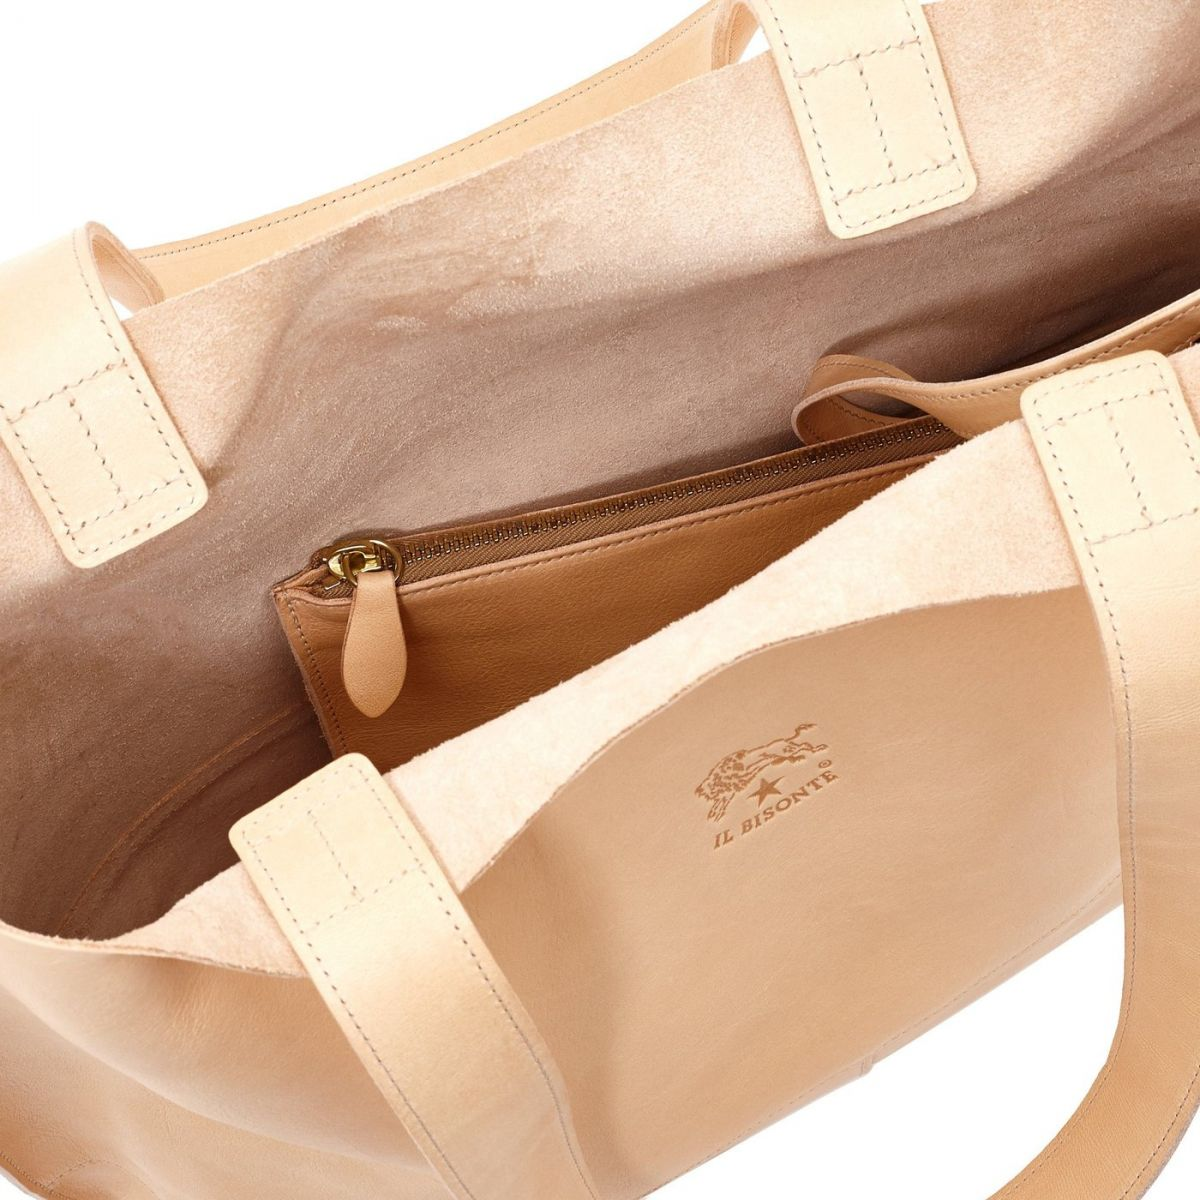 Valentina - Women's Tote Bag in Cowhide Double Leather color Natural - Talamone line BTO003 | Details